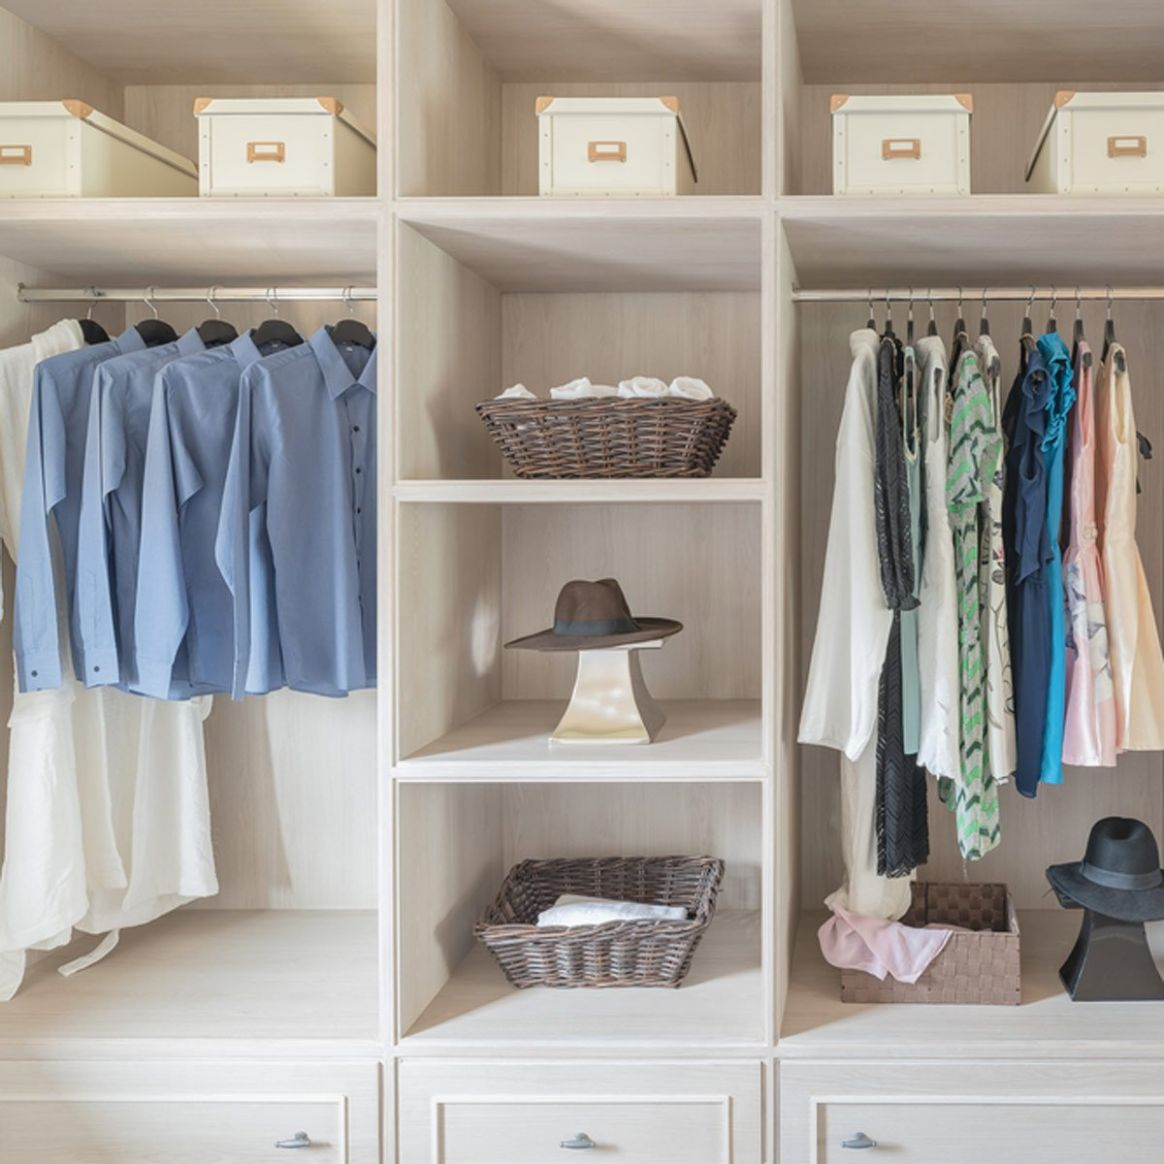 11 Walk-In Closets to Die For — The Family Handyman